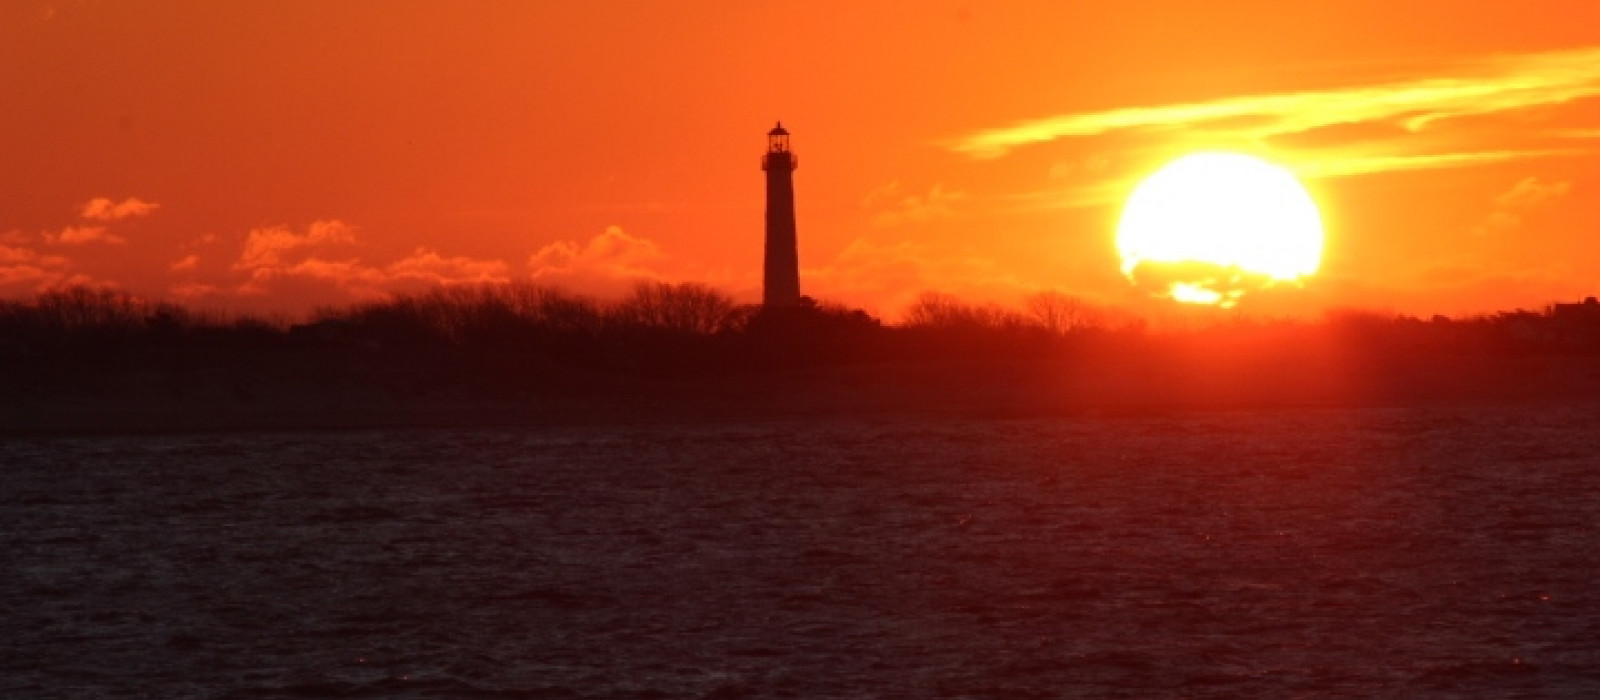 Sunrise by the Cape May Lighthouse as seen on the Cape May-Lewes Ferry